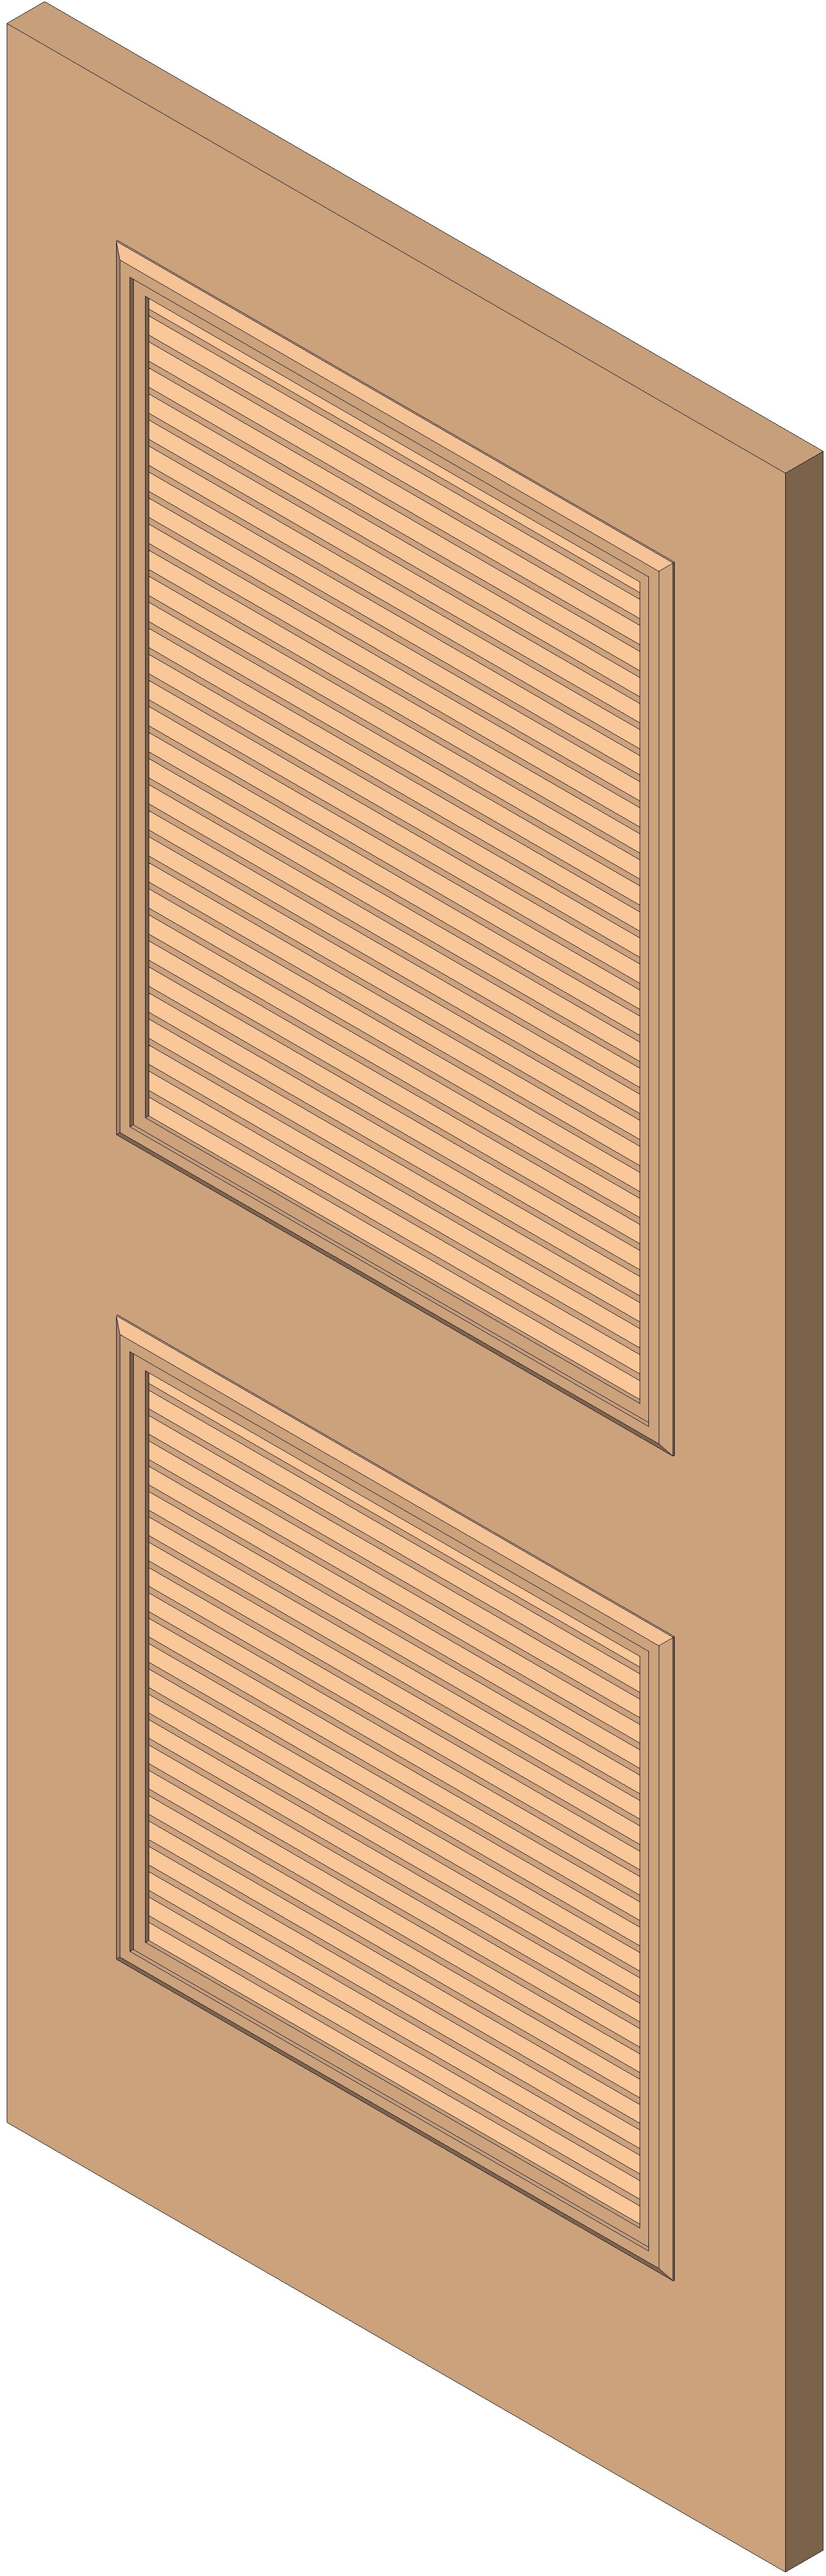 #B46217 BIM Objects / Families Most Effective 5165 Metal Louver Doors pictures with 1600x4987 px on helpvideos.info - Air Conditioners, Air Coolers and more